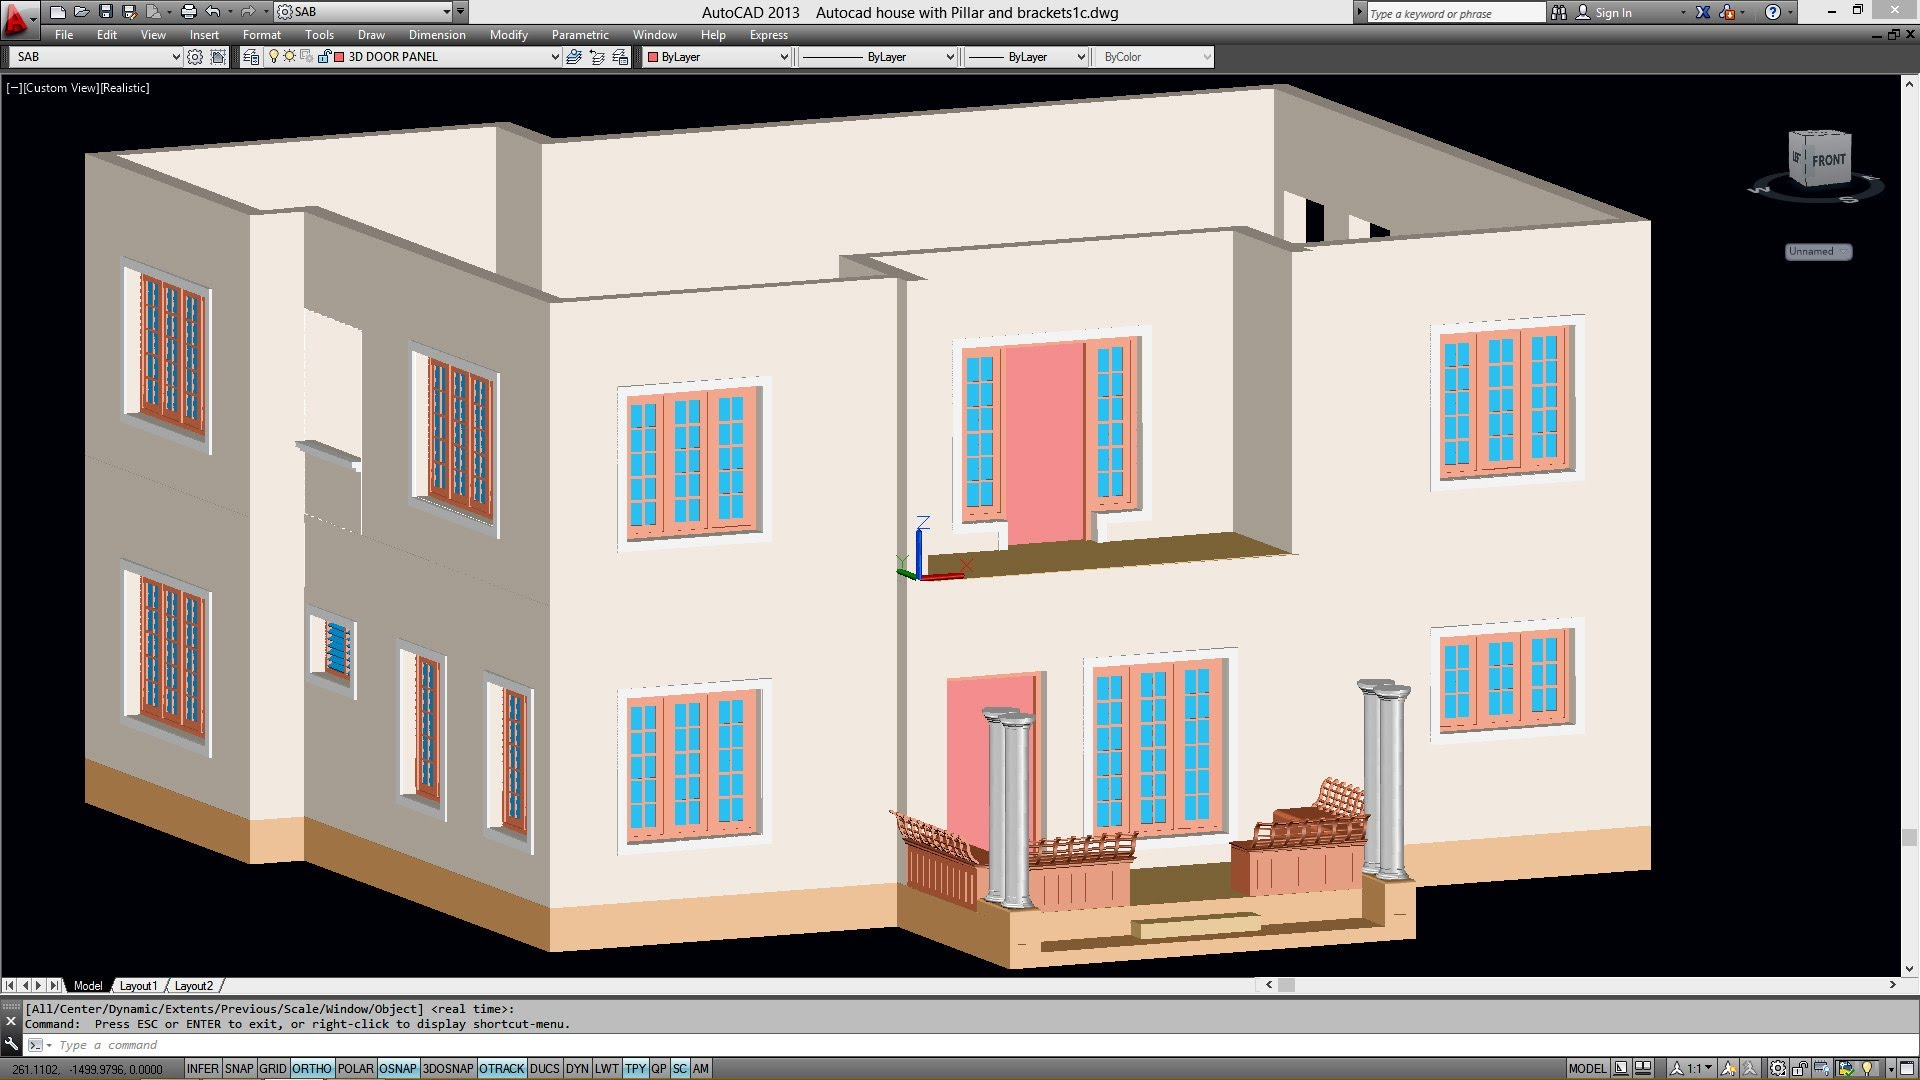 Drawn office home office AUTOCAD THE FROM FLOOR THE